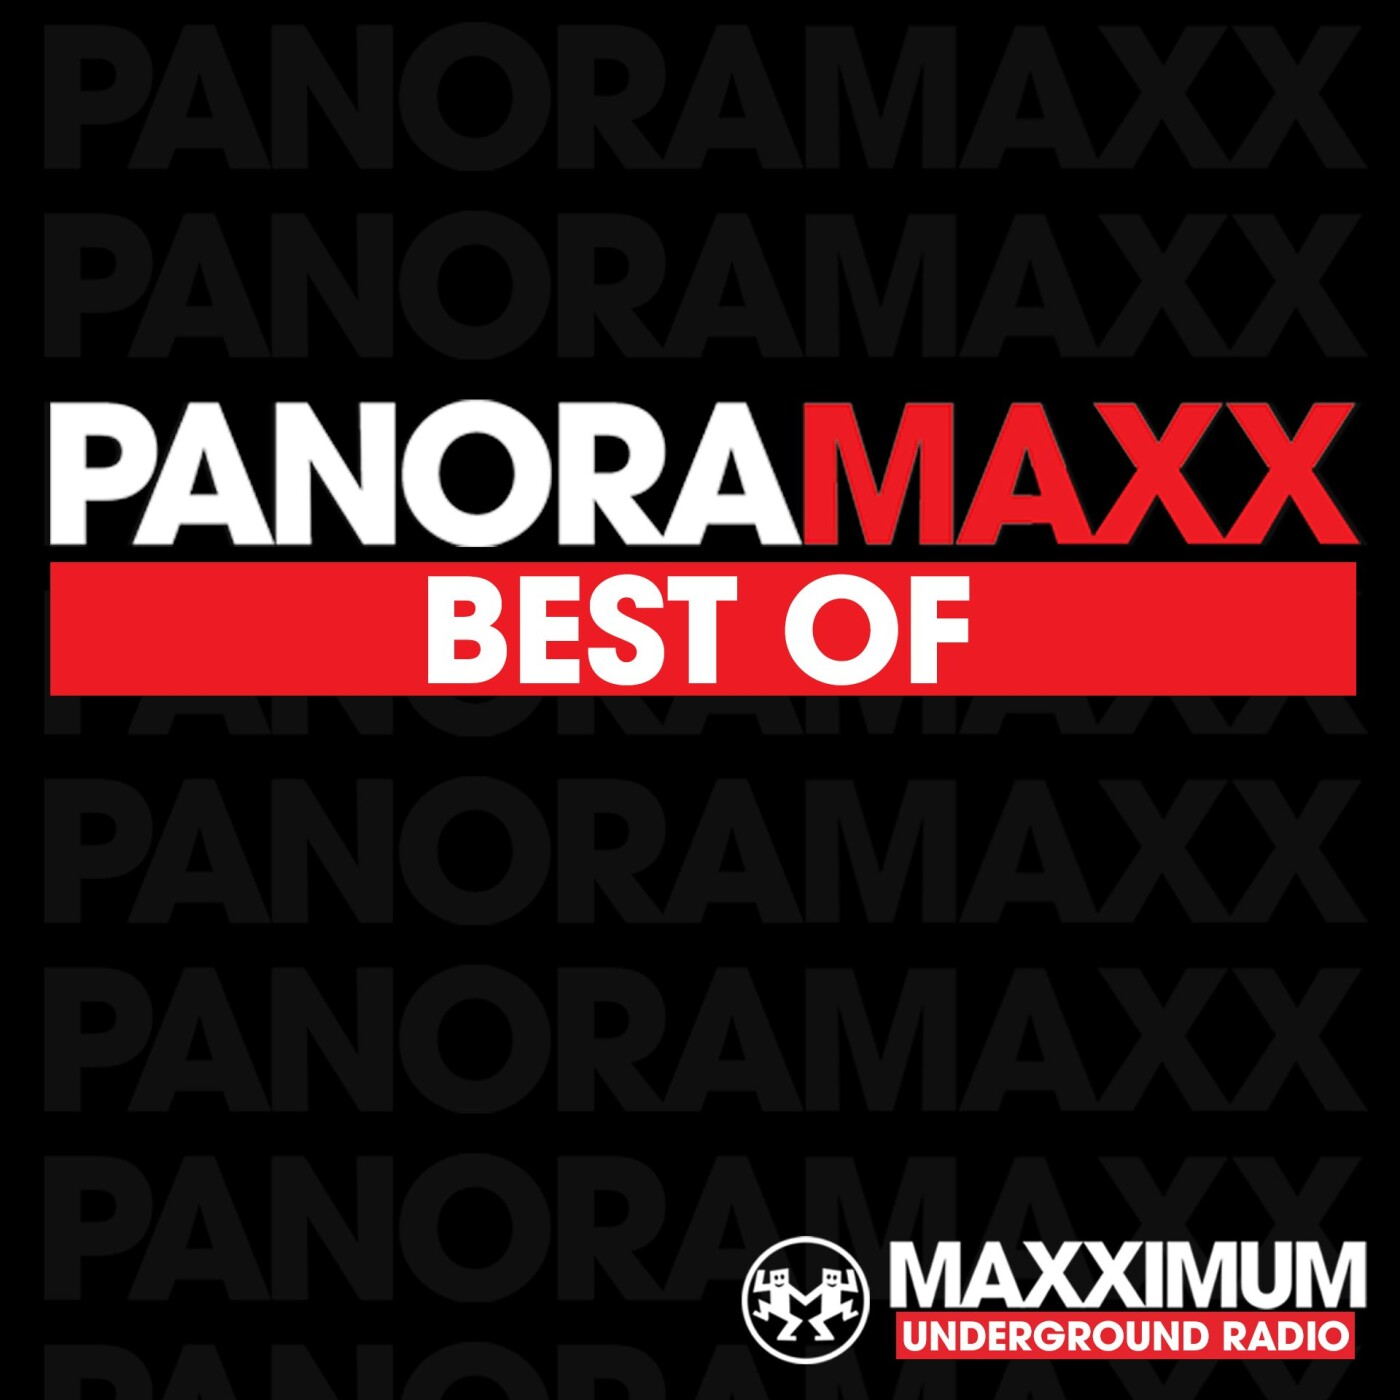 PANORAMAXX BEST OF : TERRENCE PARKER